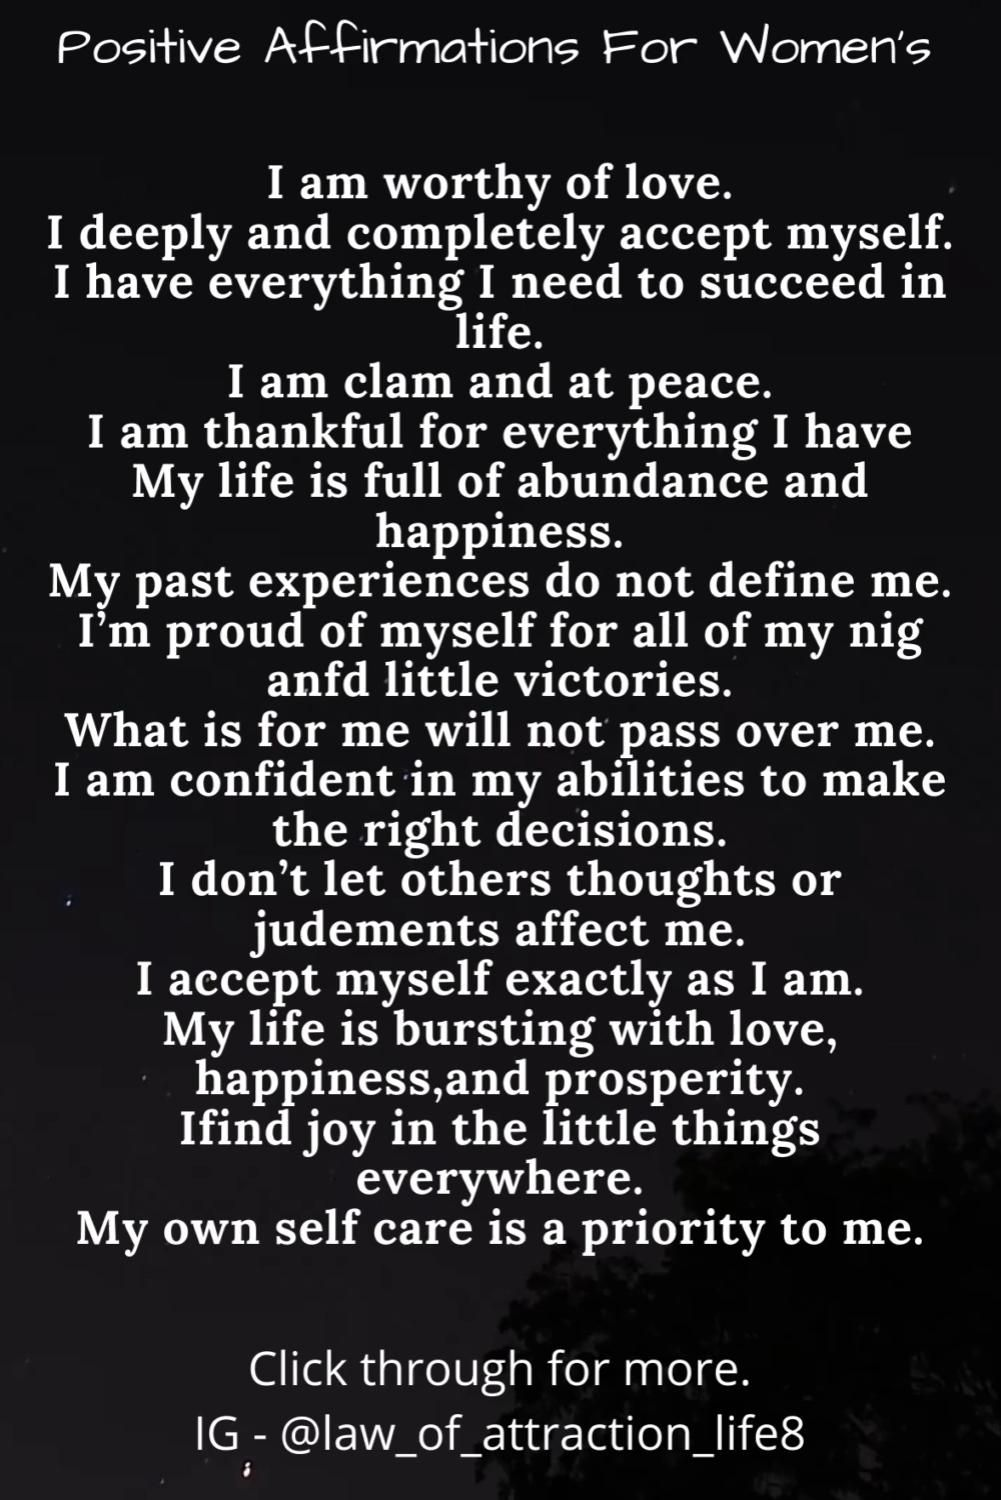 Daily Positive Affirmations and Inspiration for Women's